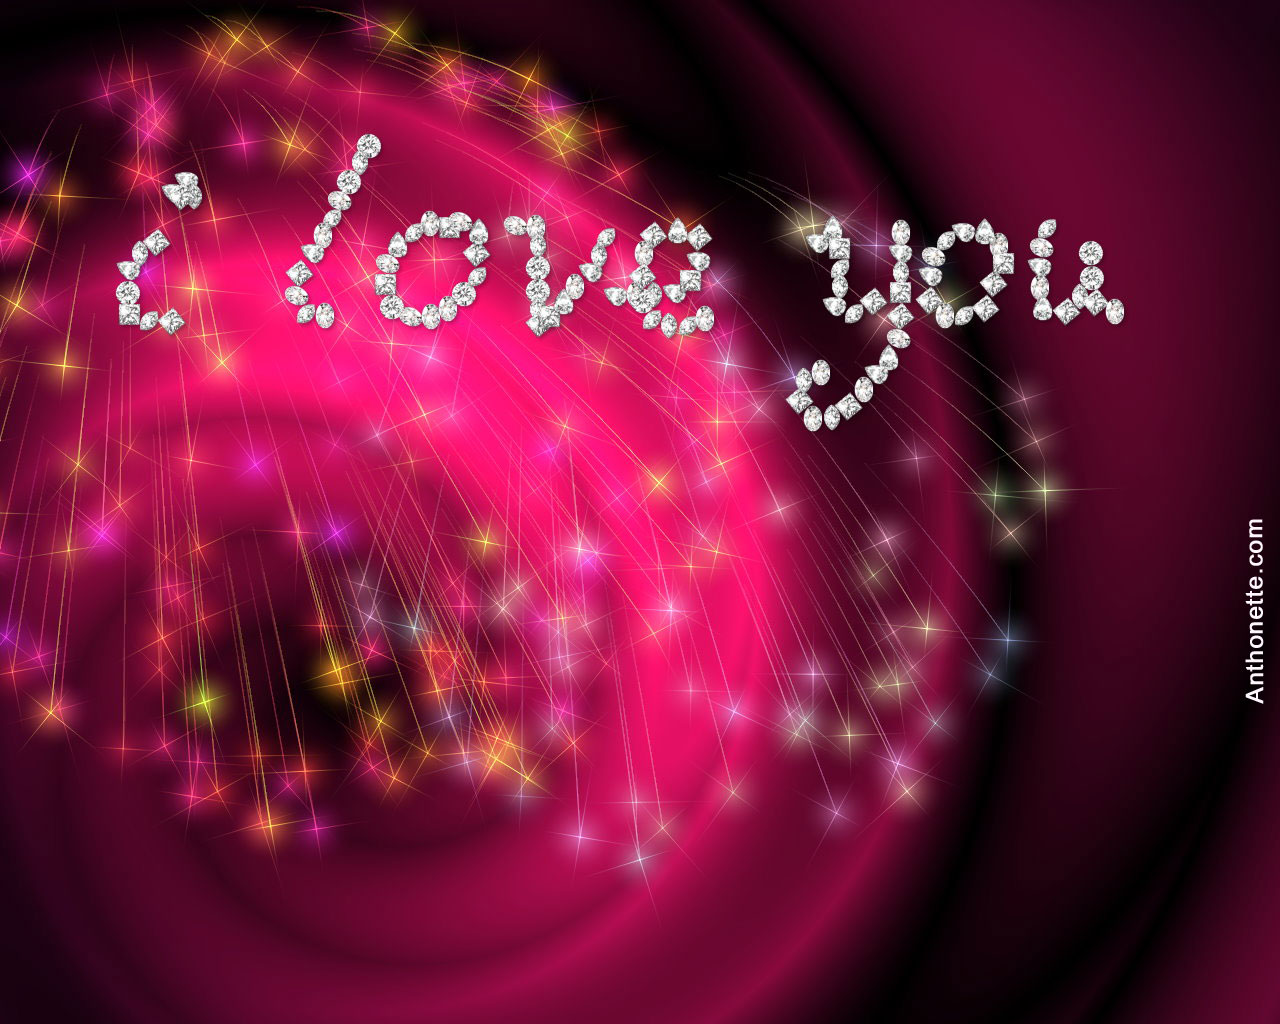 Wallpaper Love Name A : Wallpaper i love you papel de Parede #2 ~ Links da WEB